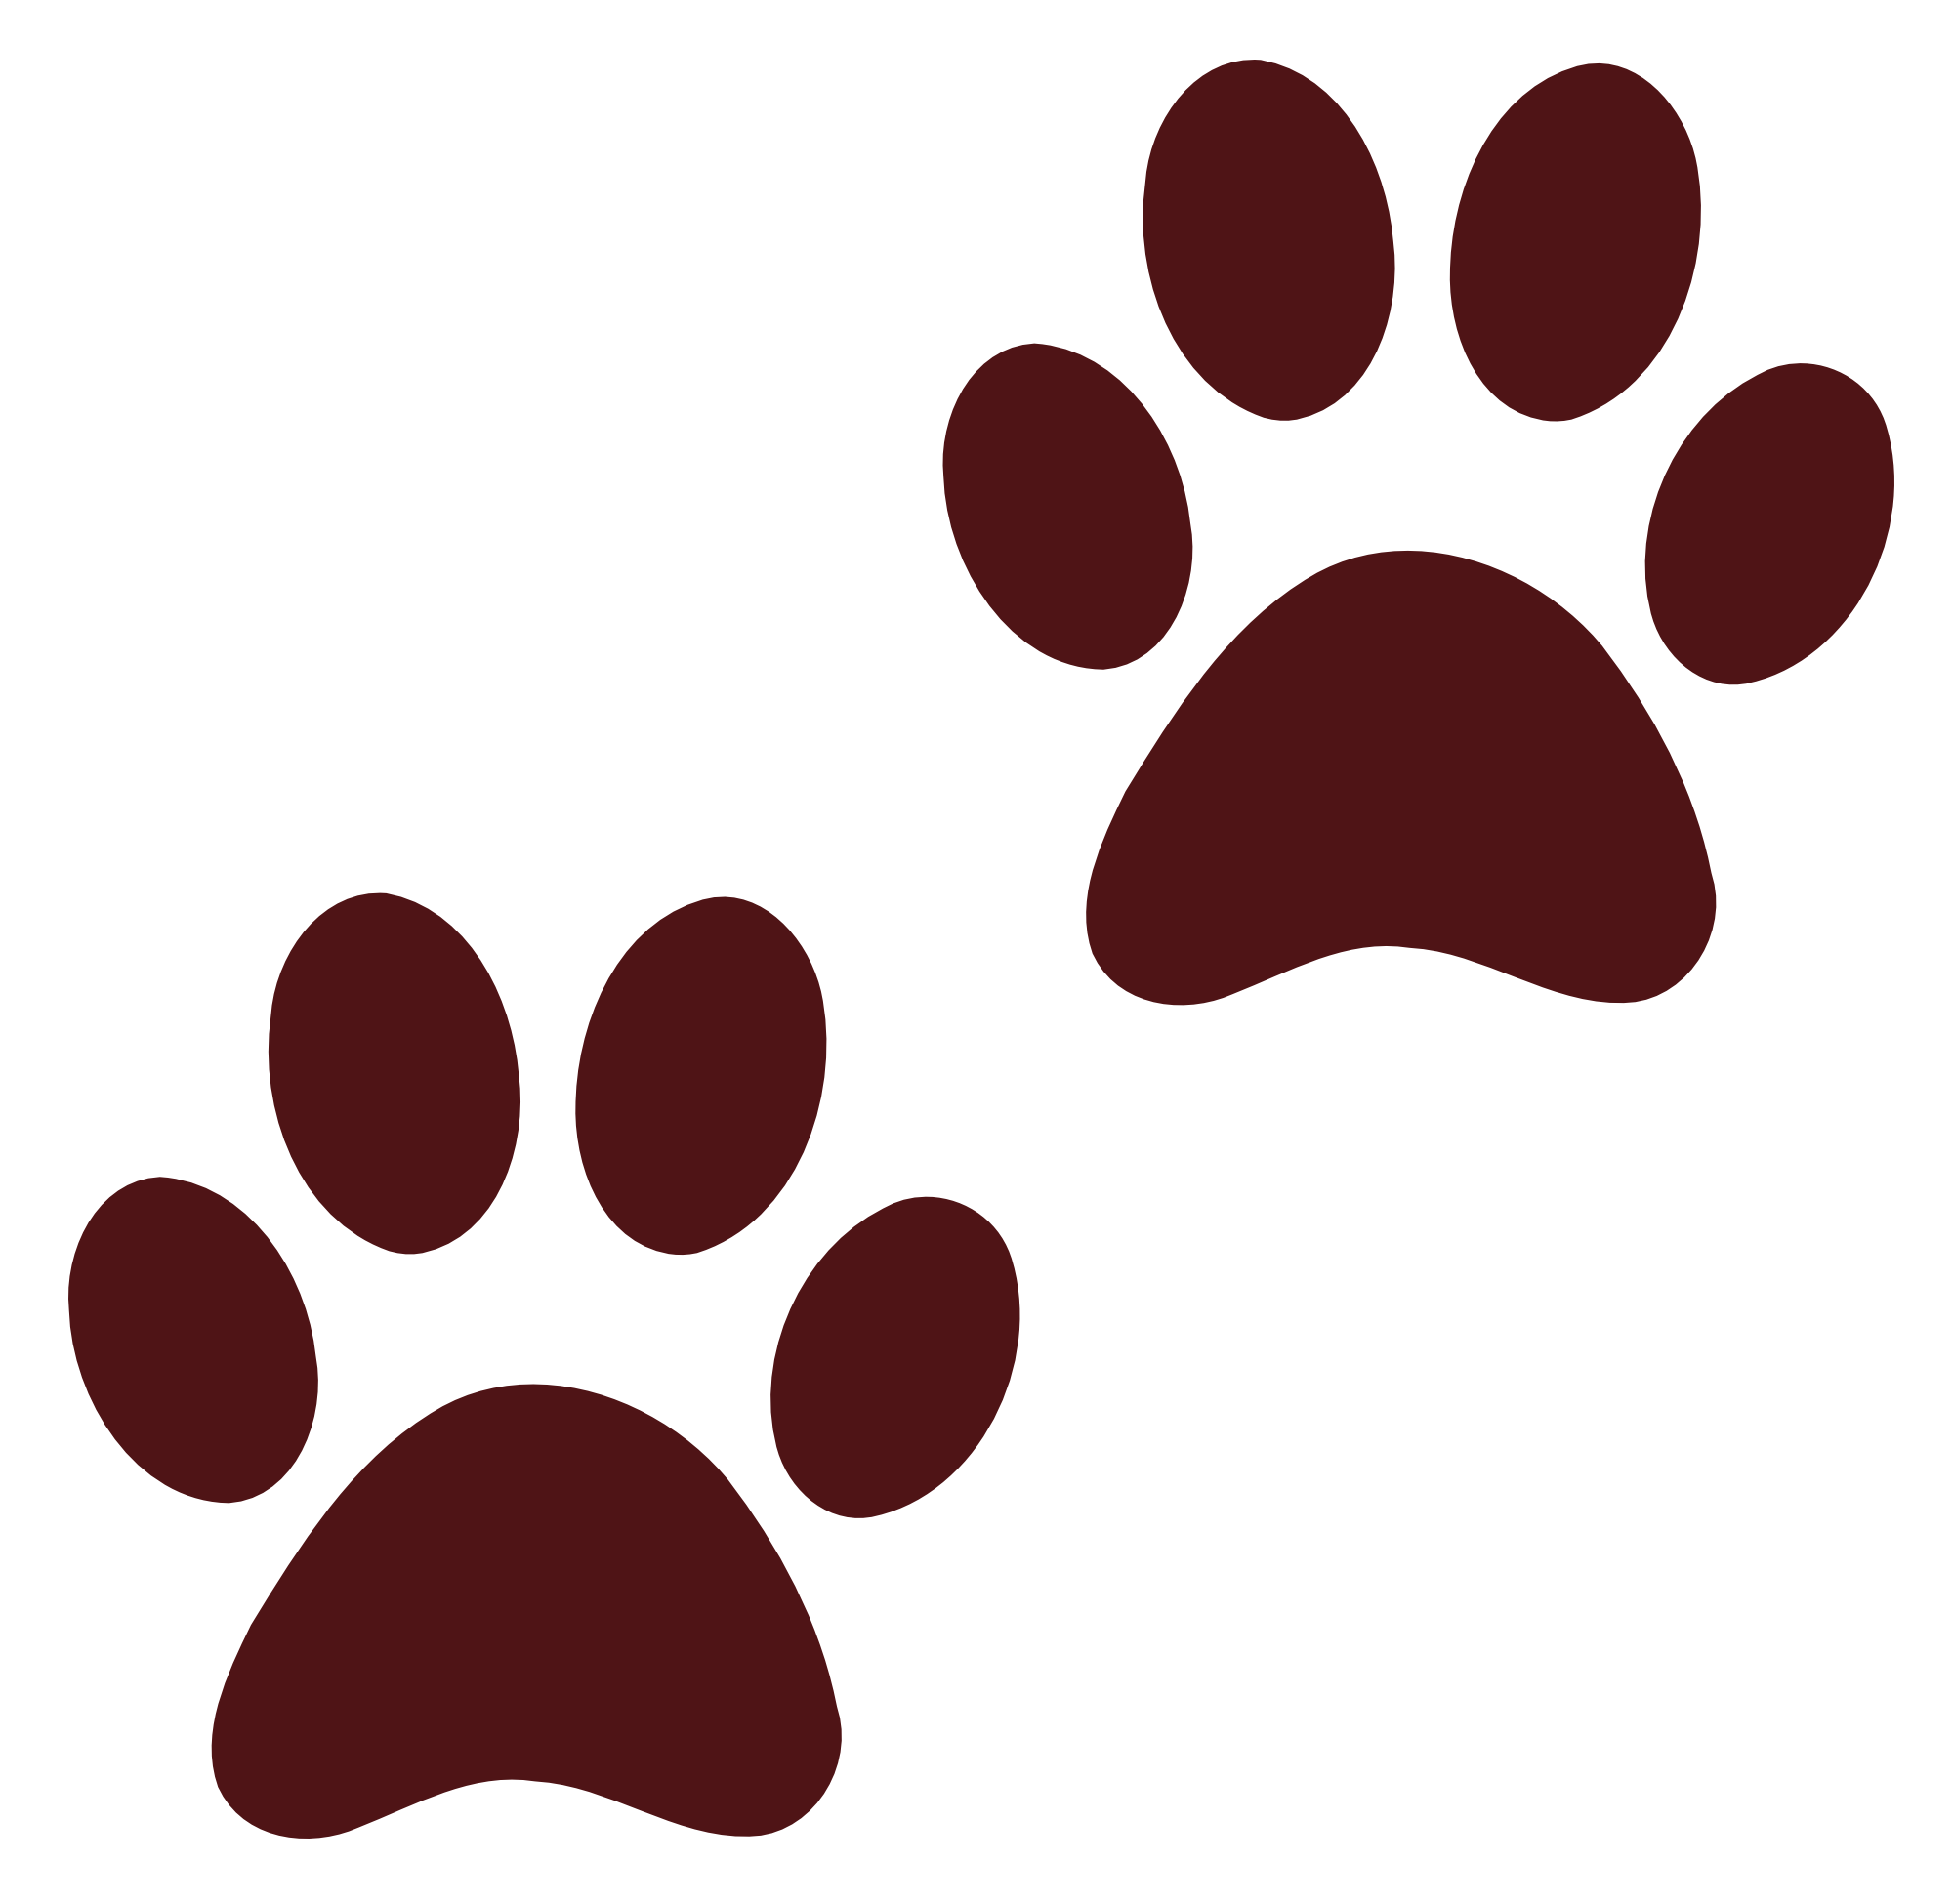 Pawprint clipart color. Dog paw print png